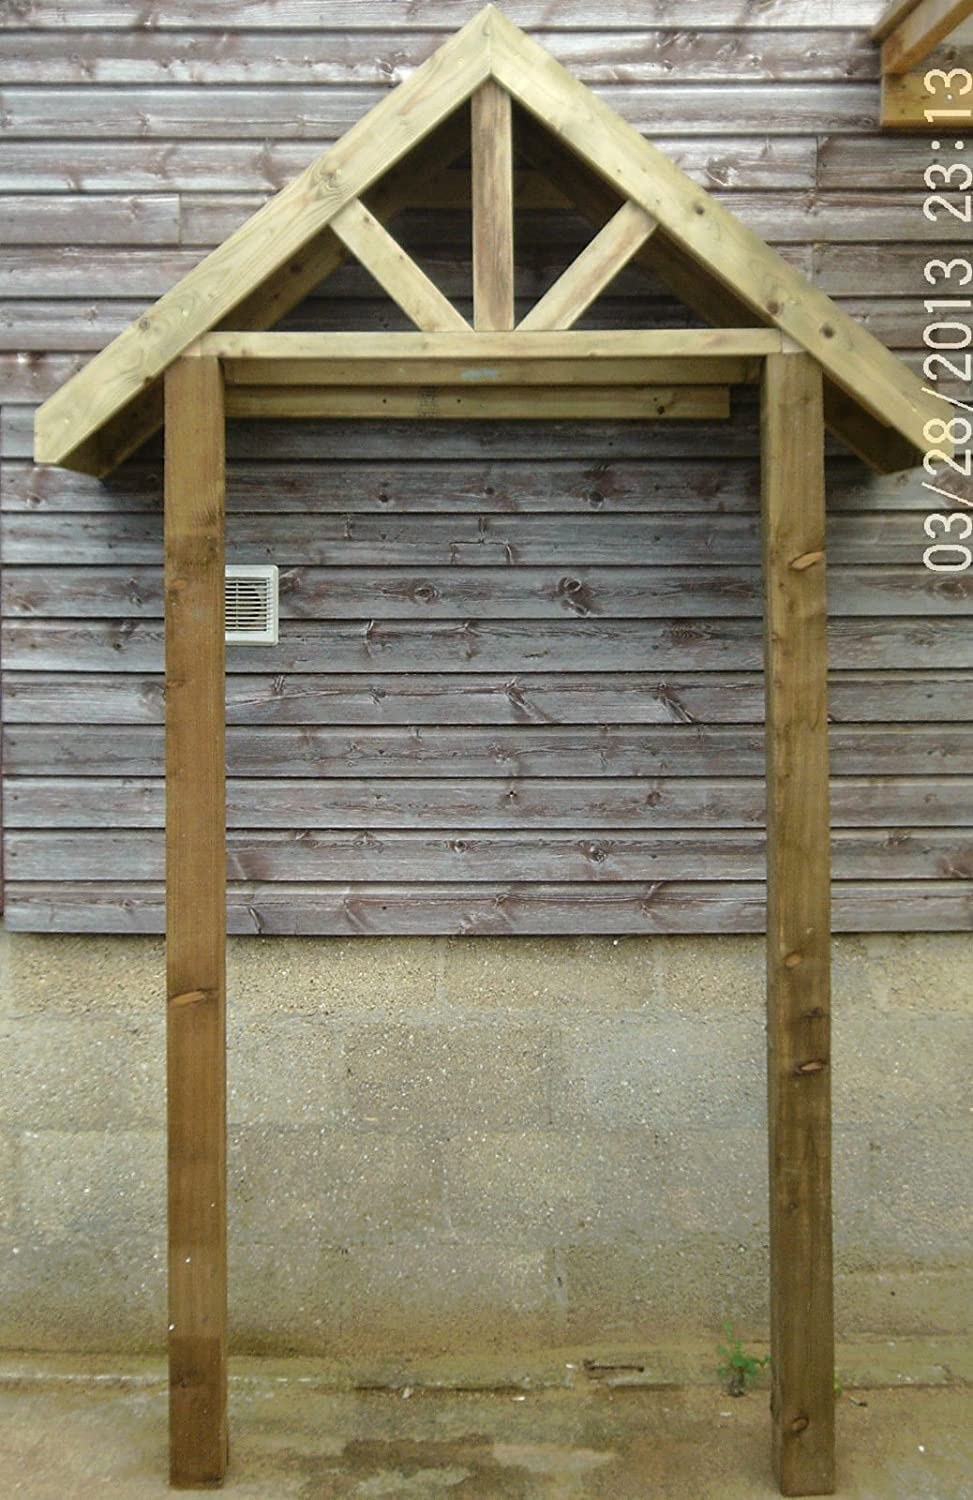 & Wooden Porch Canopy \u0026 Stilts: Amazon.co.uk: Garden \u0026 Outdoors